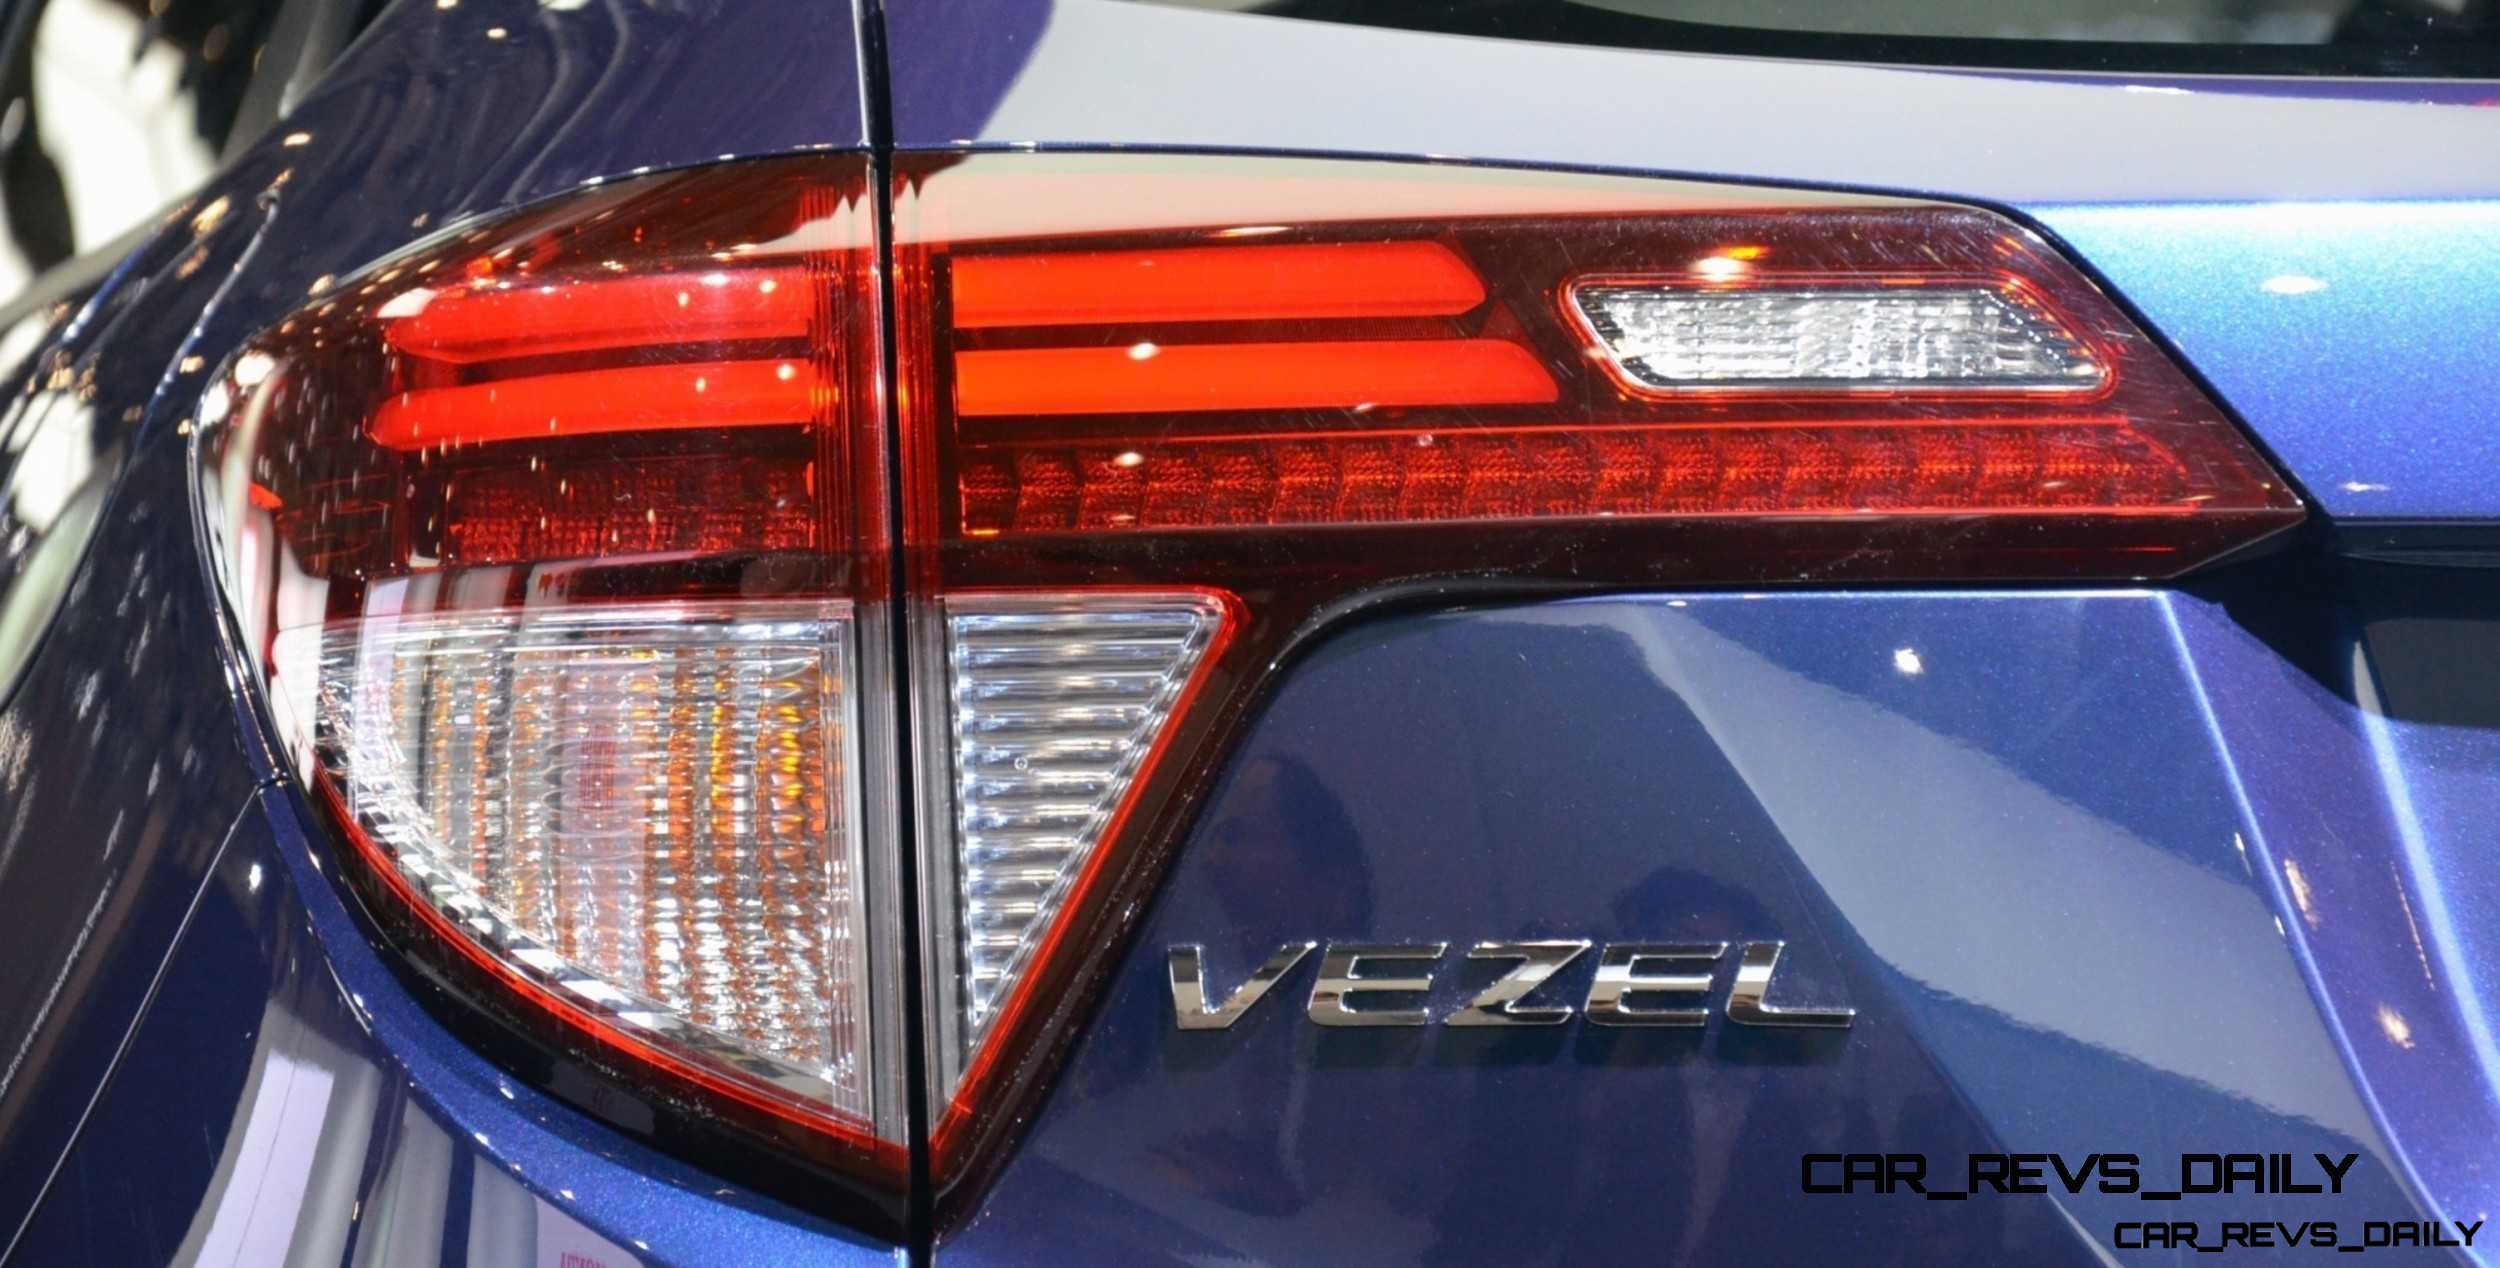 Cool! 2015 Honda Vezel Hybrid Previews Spring 2014 Civic CUV34